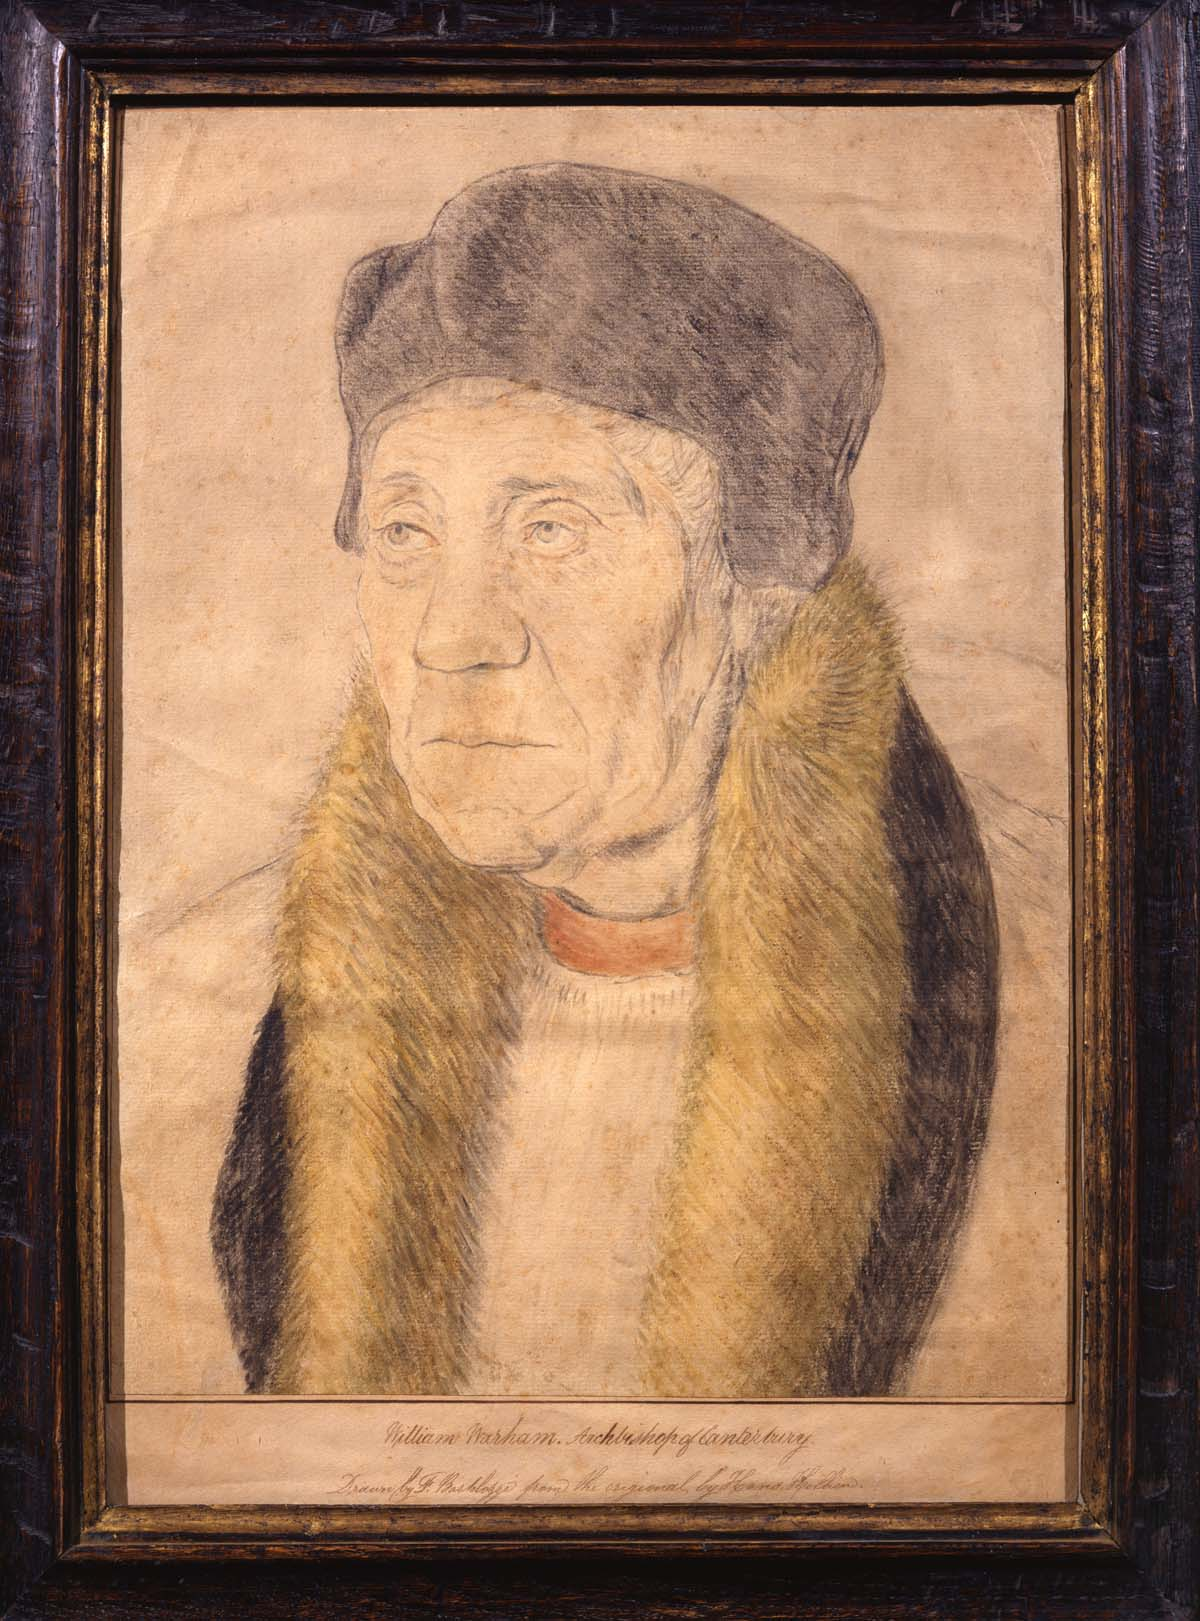 a pencil ad watercolour portrait of William Hever with fur hat and fur collar